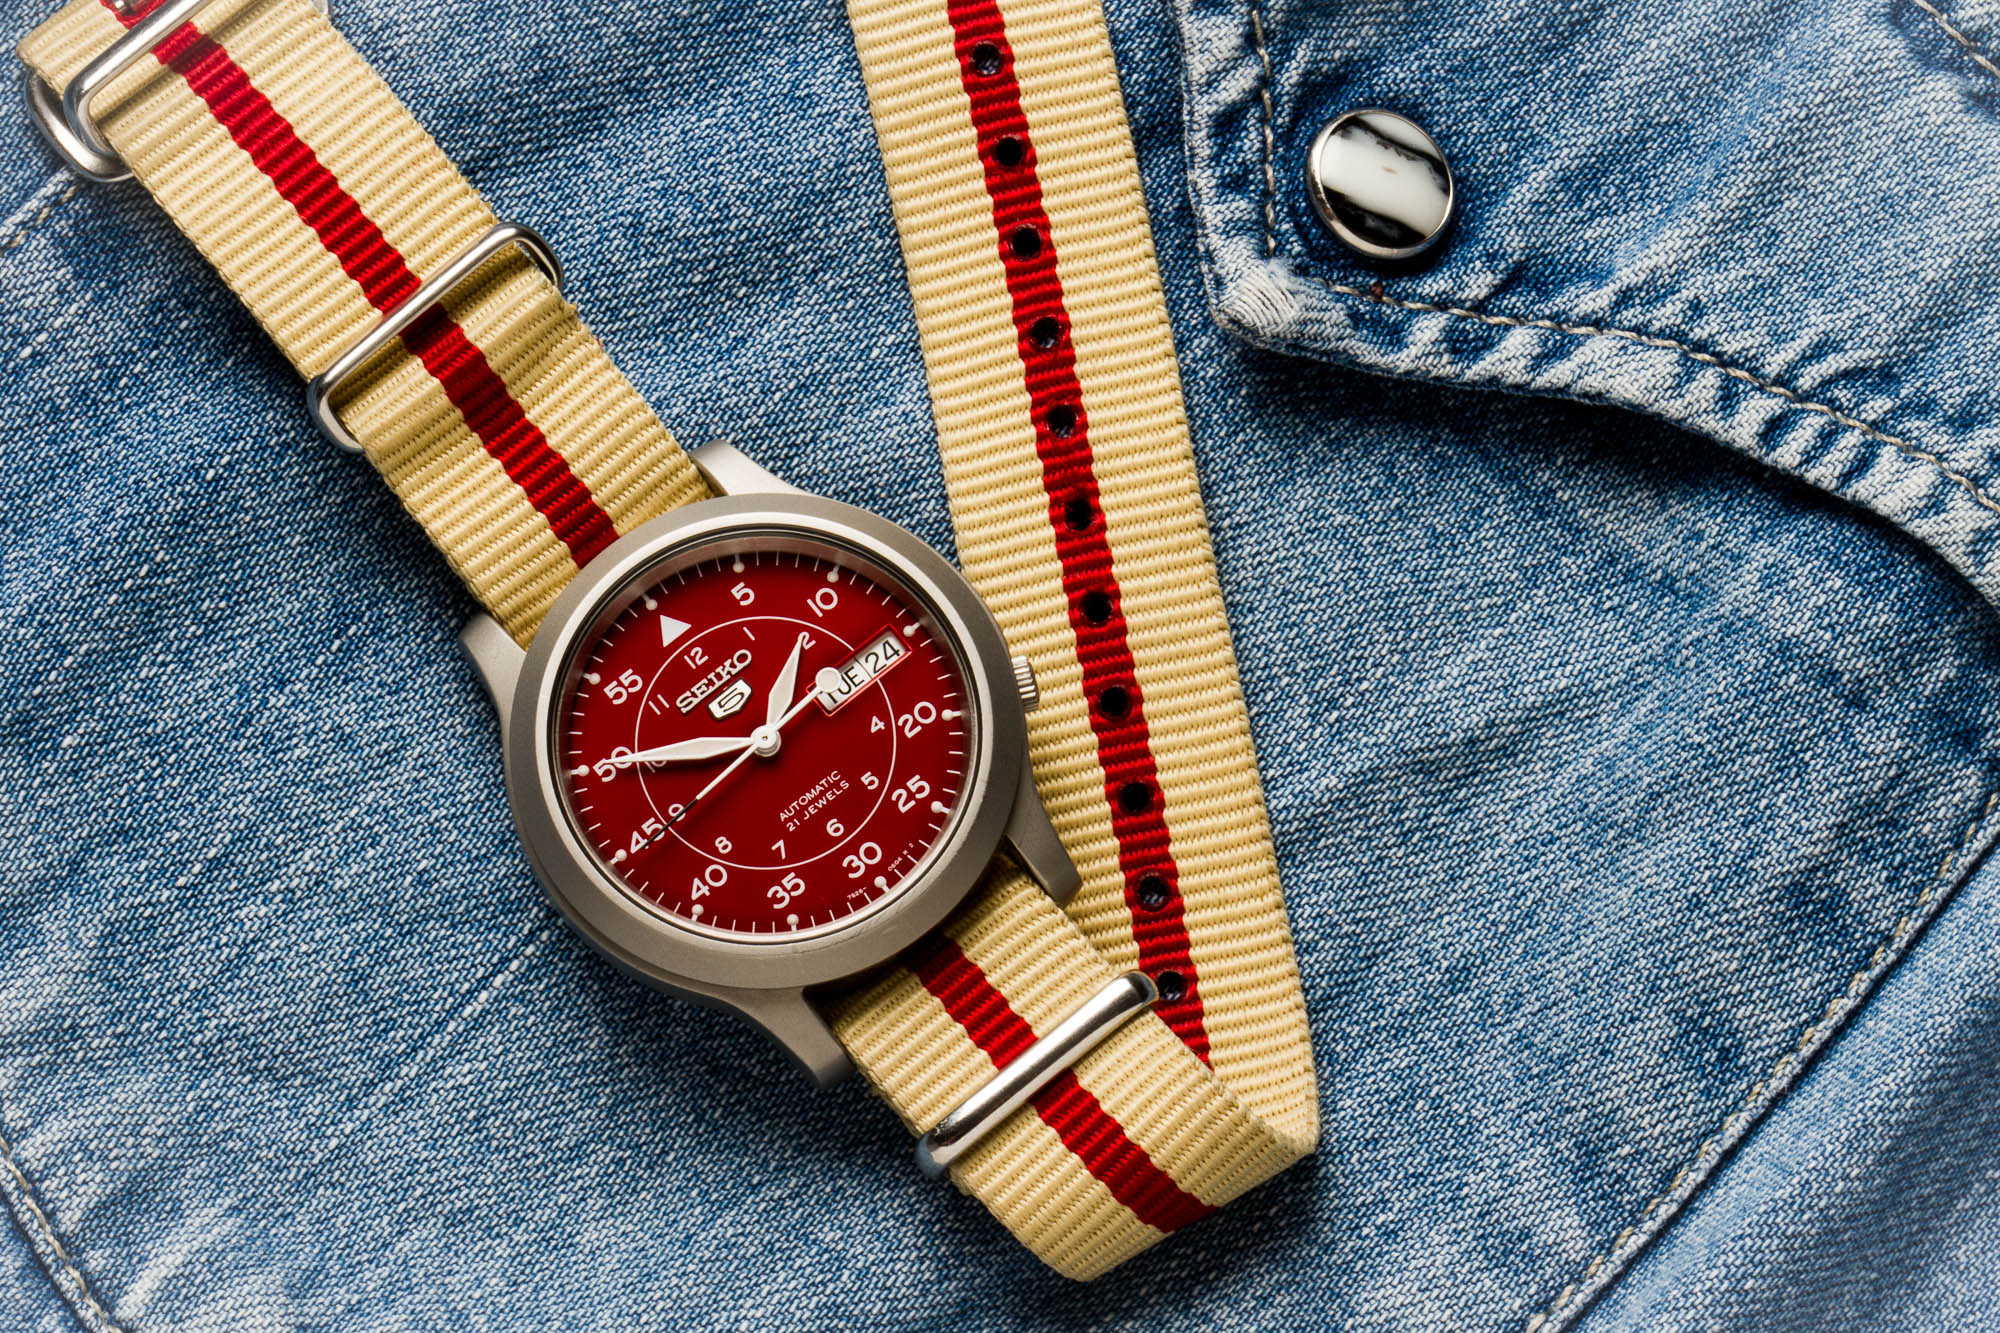 Seiko 5 Military SNKM95 Red Amazon Dial